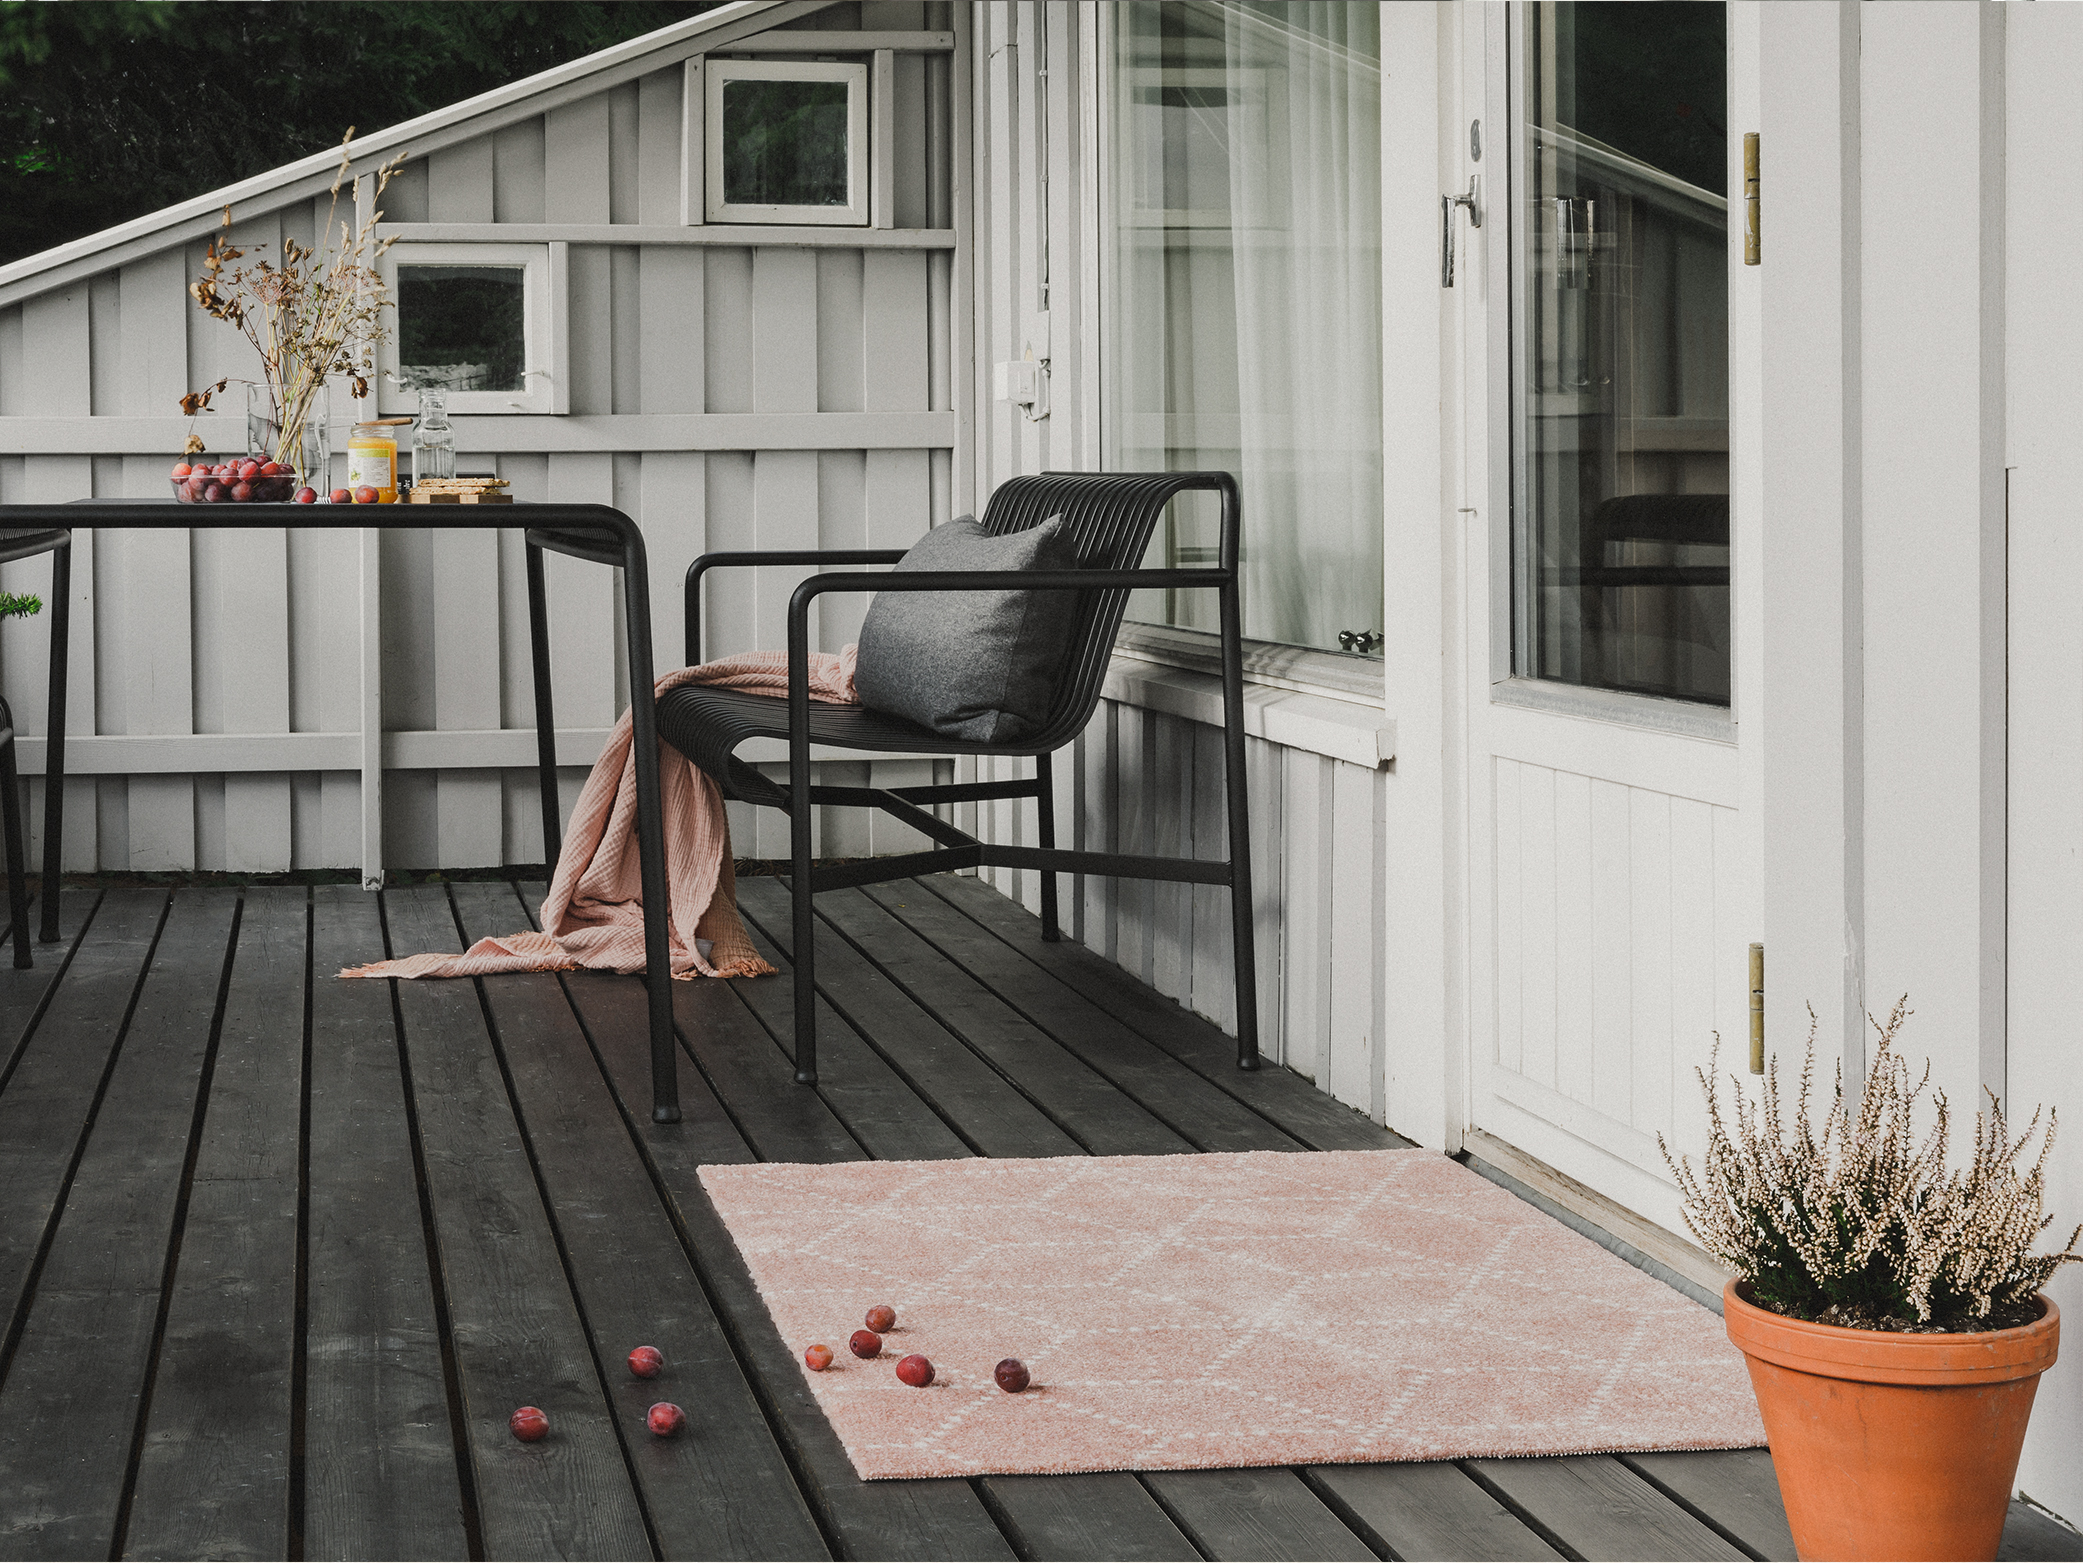 Yes! It can also be used outdoors as long as it is under a covered awning or patio.